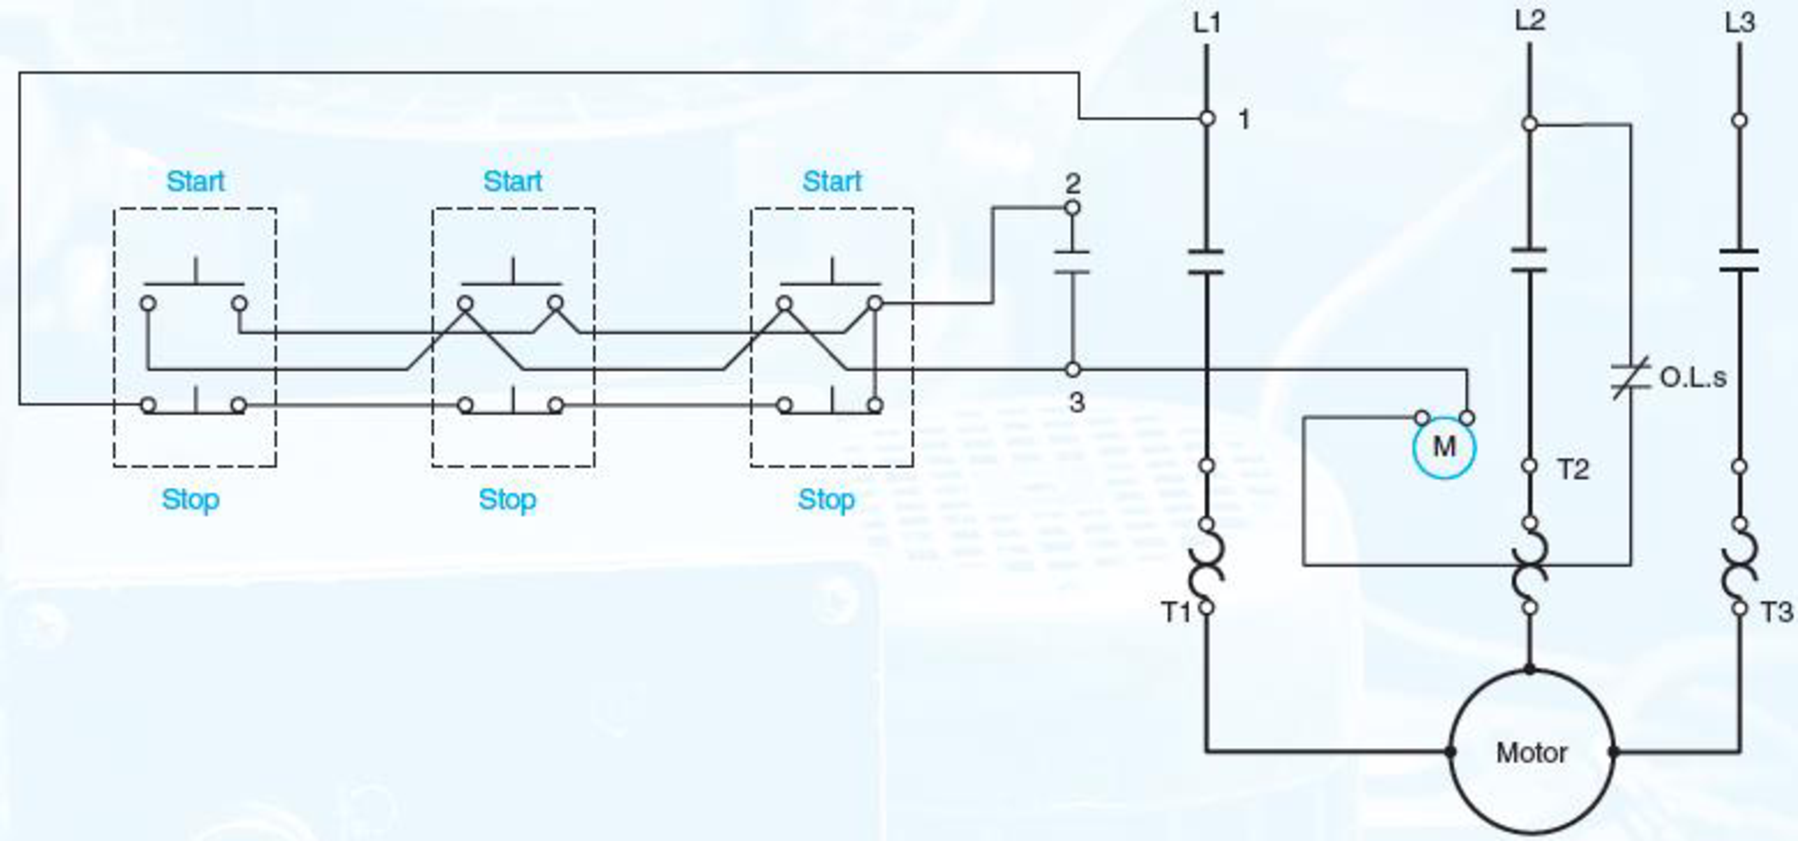 motor wiring drawing draw a line diagram of the control circuit shown in figure 5   21  control circuit shown in figure 5   21